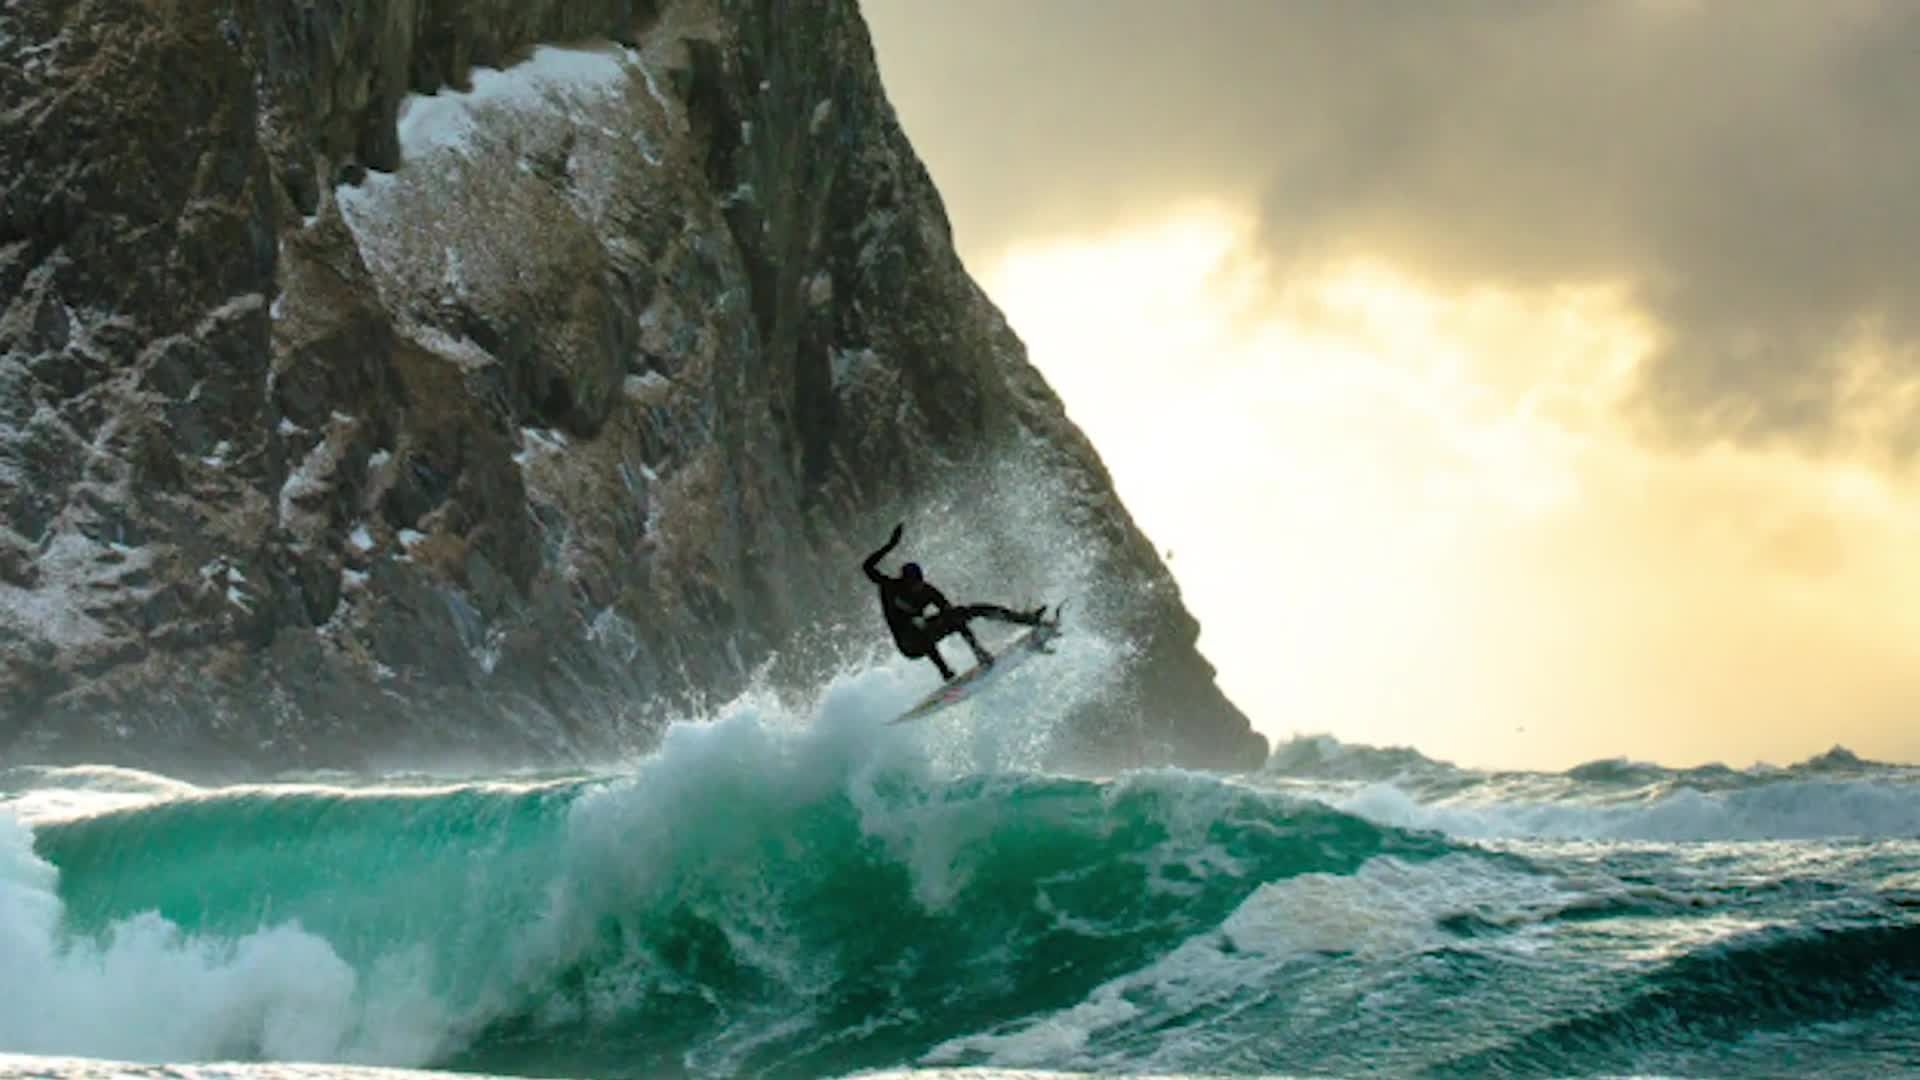 Talking Pictures: The Icy Surf Photography of Chris Burkard